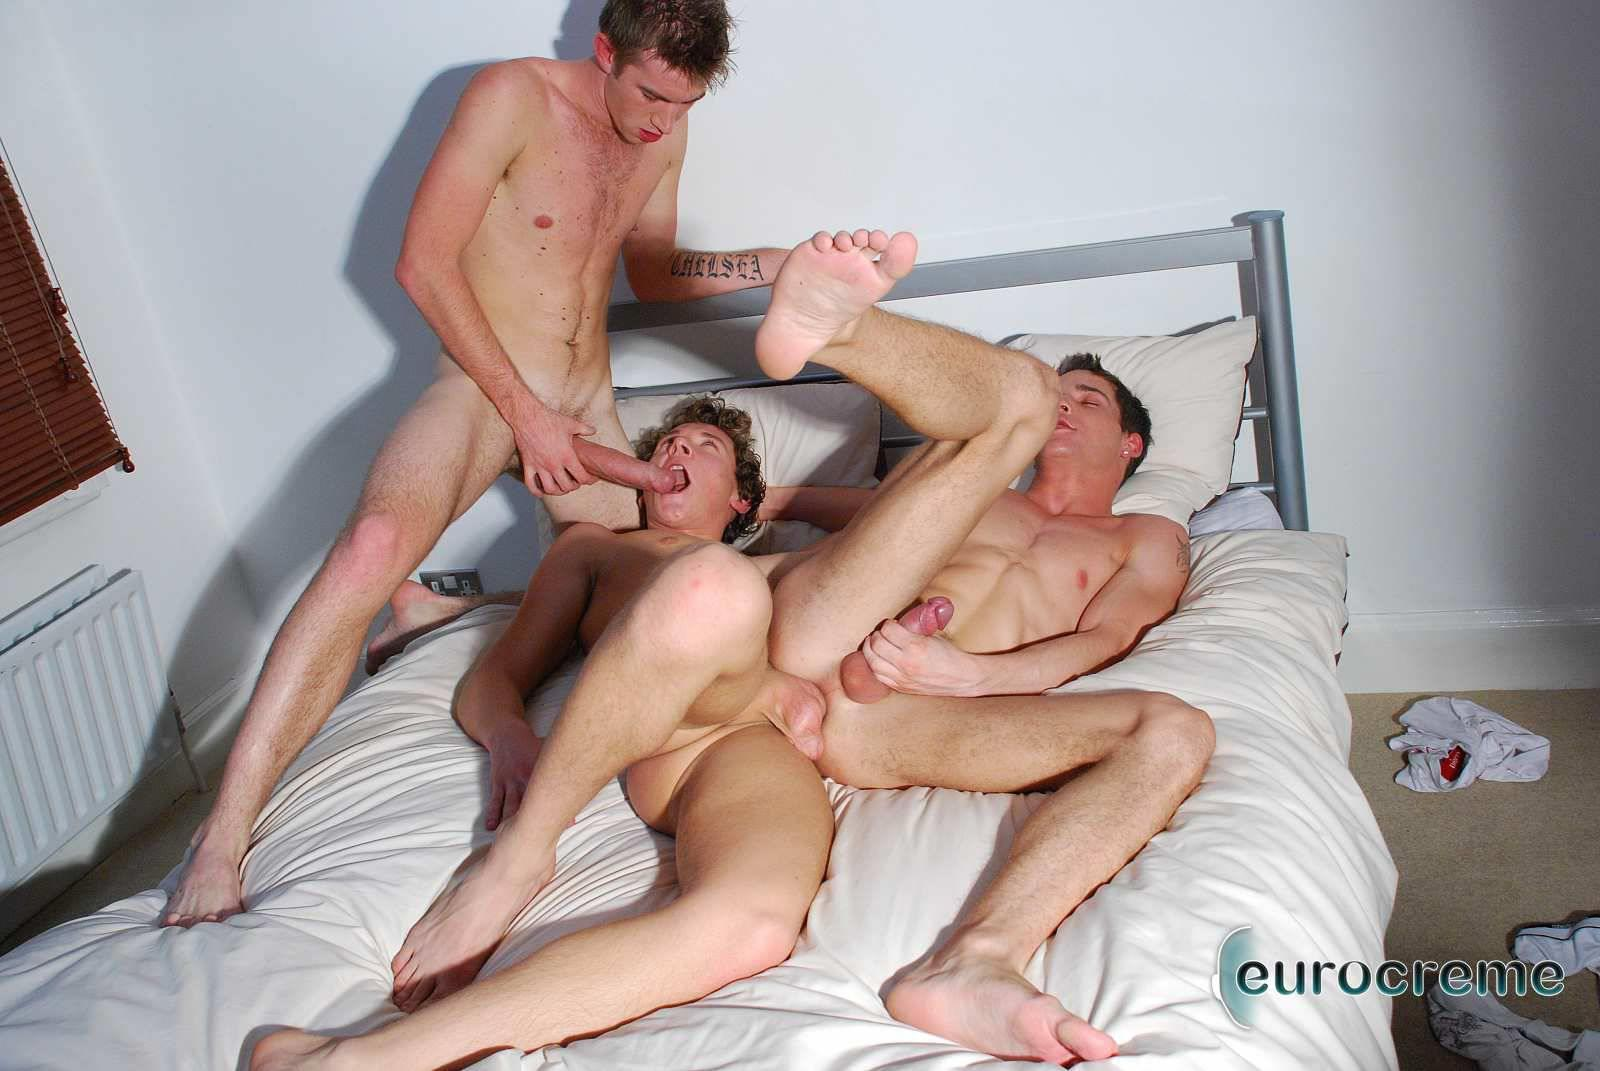 Eurocreme Matt Hughes and Alex Stevens and Philipe Delvaux Twinks Fucking Amateur Gay Porn 14 Matt Hughes Uses His 11 Inch Uncut Cock On Two Tricks